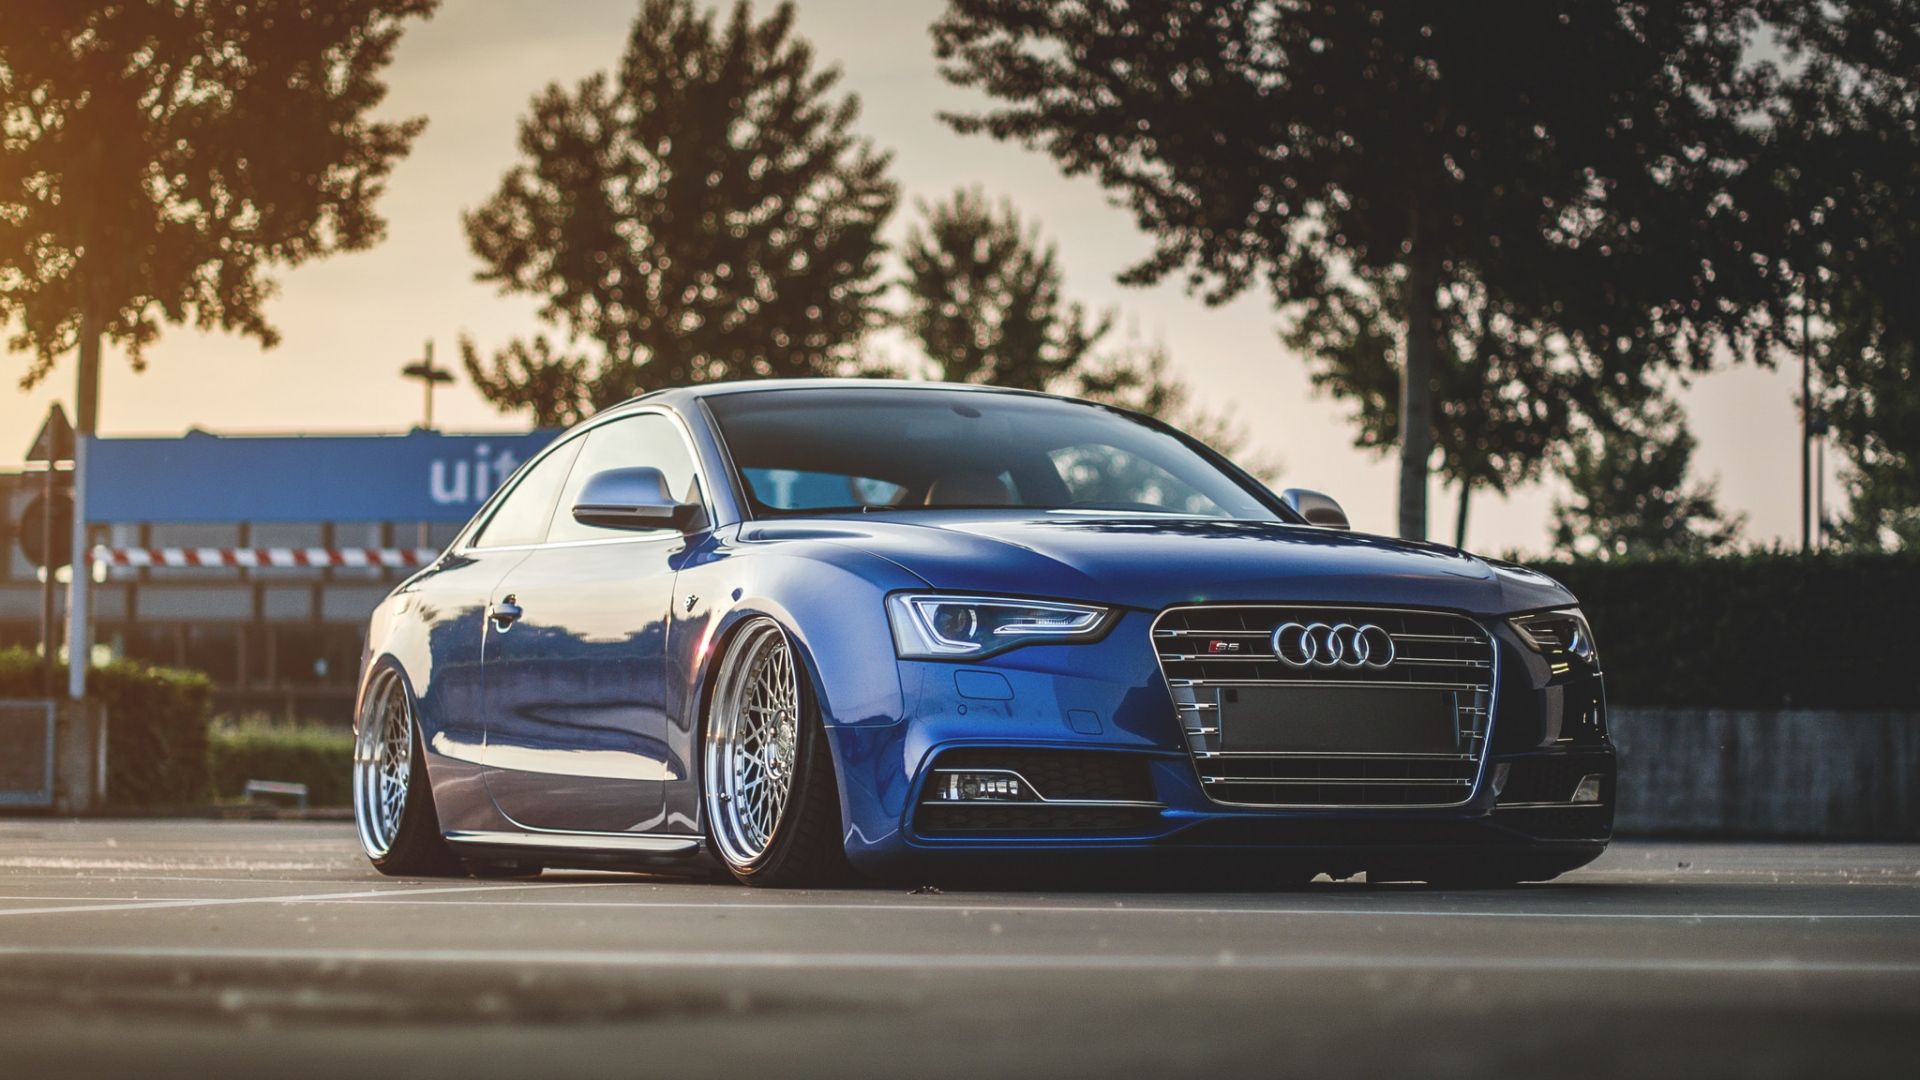 audi wallpapers, car wallpapers and backgrounds | bestapppromotion